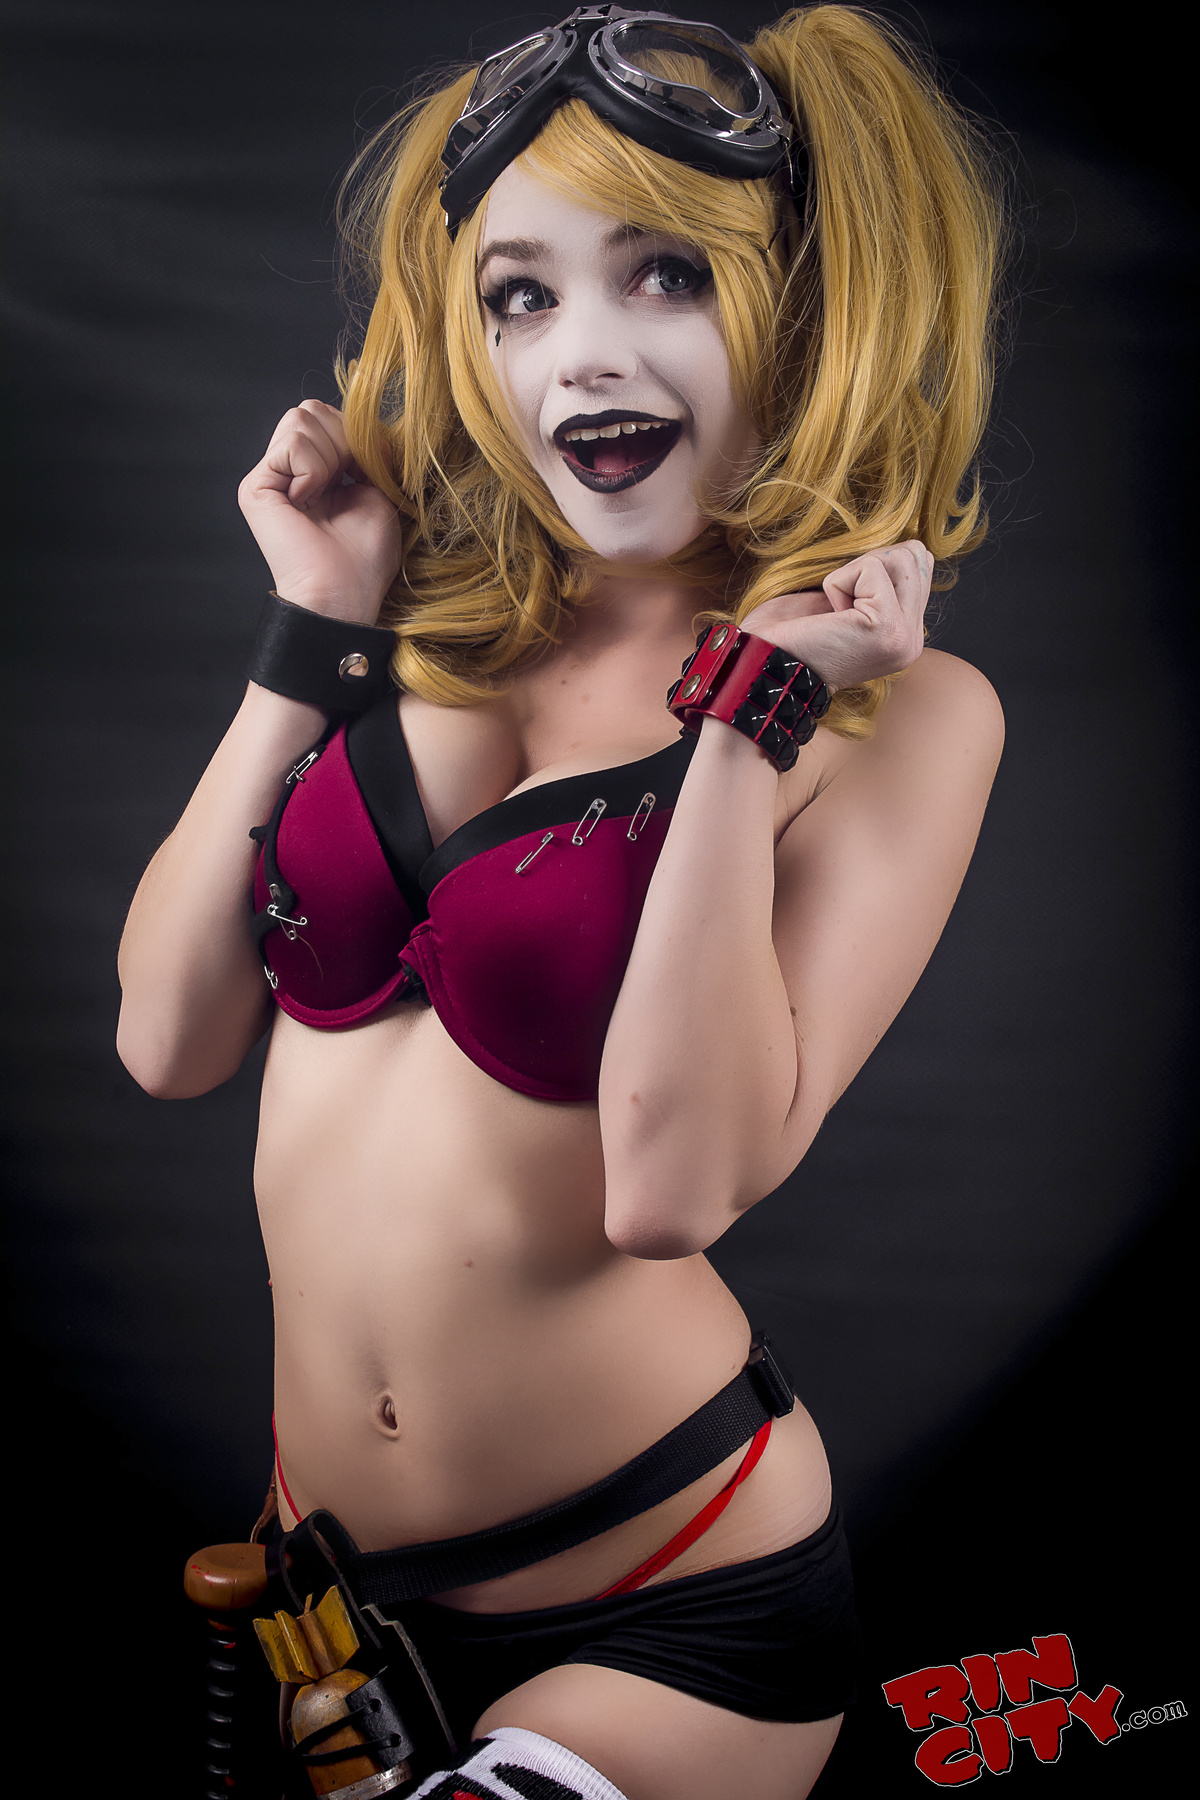 Excellent nude sexy harley quinn valuable